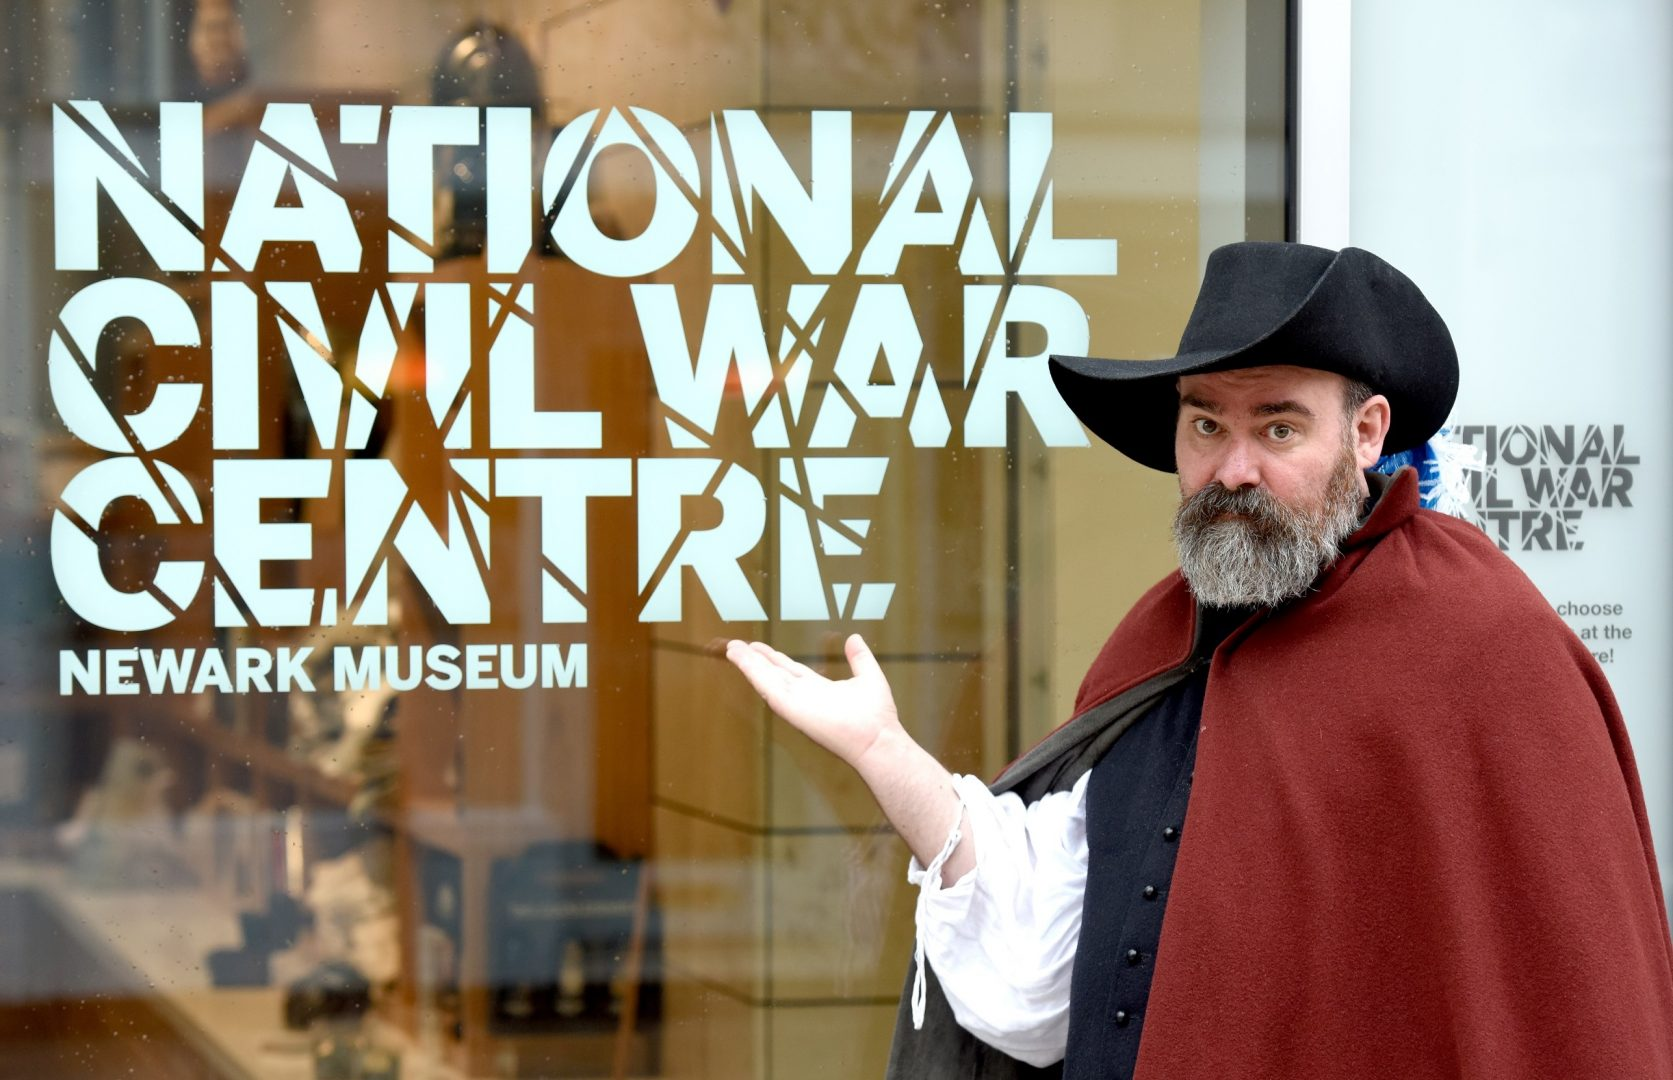 Actor welcoming visitors to the National Civil War Centre